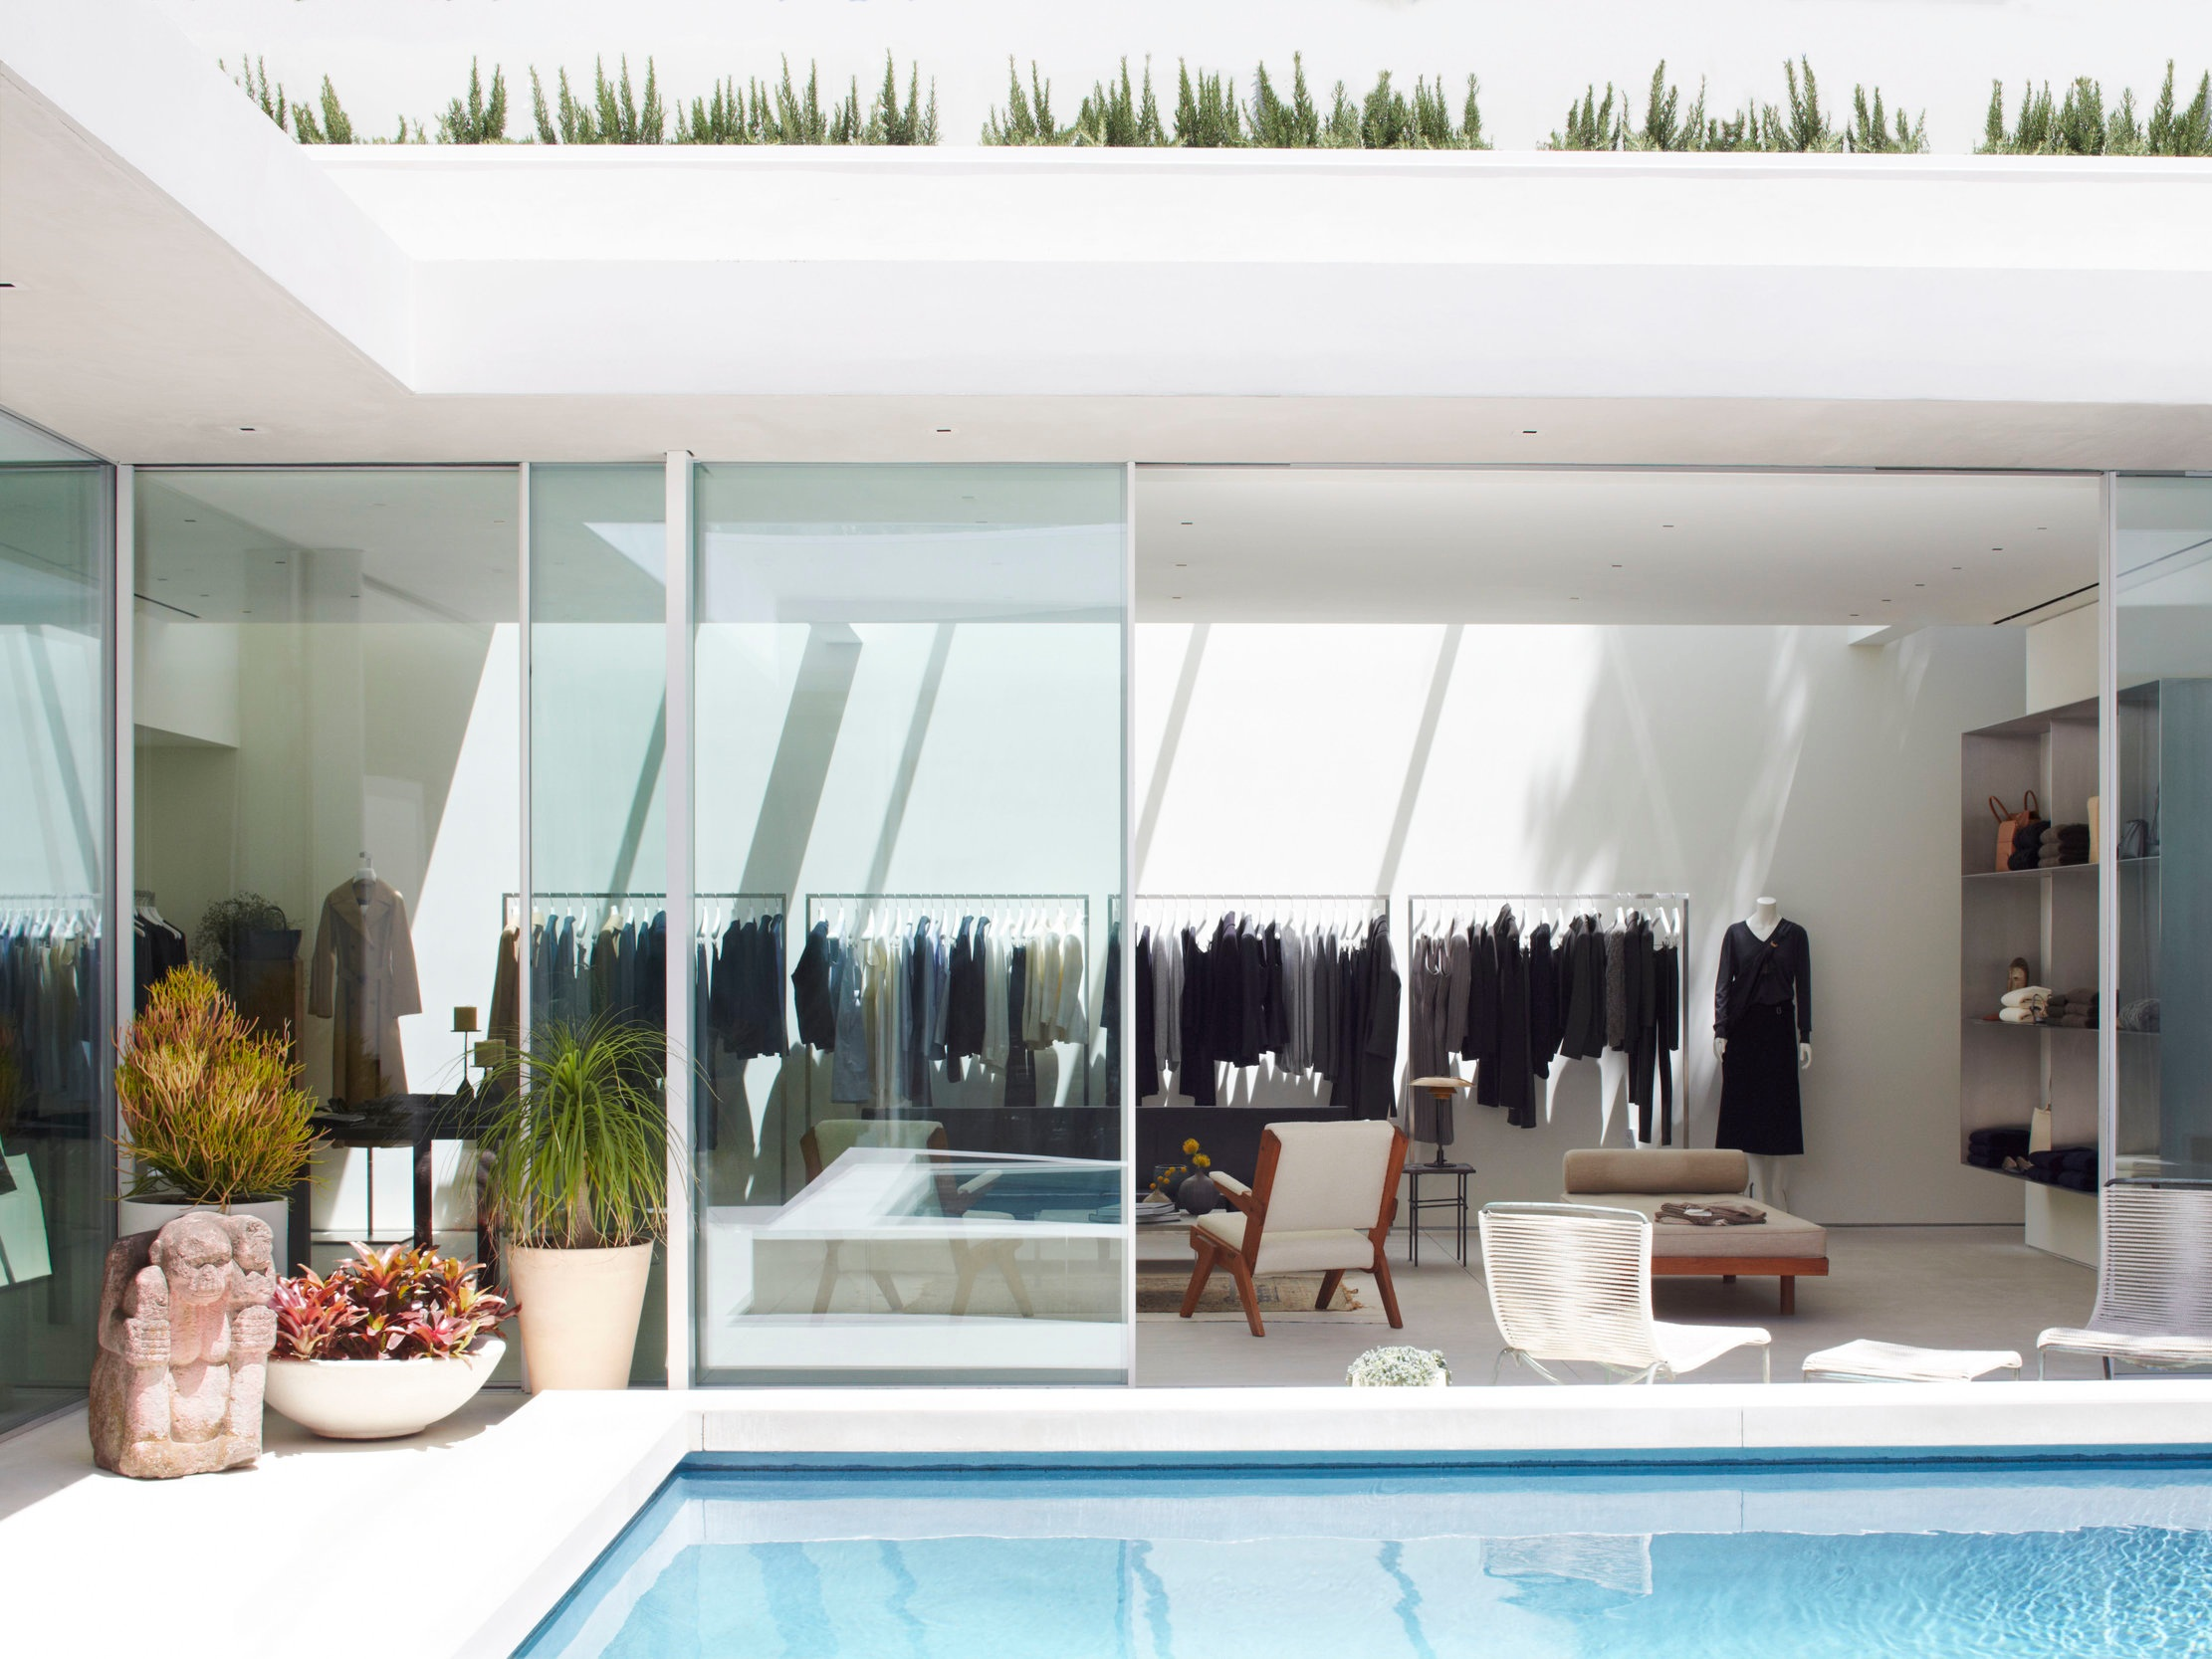 The Row - This sparse and elegantly minimal space is the perfect example of showing restraint in an interior. Bathed in Californian sunlight, the space features European furniture and vintage jewellery alongside the brands clothing line. Complete with a recessed pool in the courtyard, this is one retail experience which will be hard to leave.Find The Row8440 Melrose Place, Los Angeles, California 90069, United States